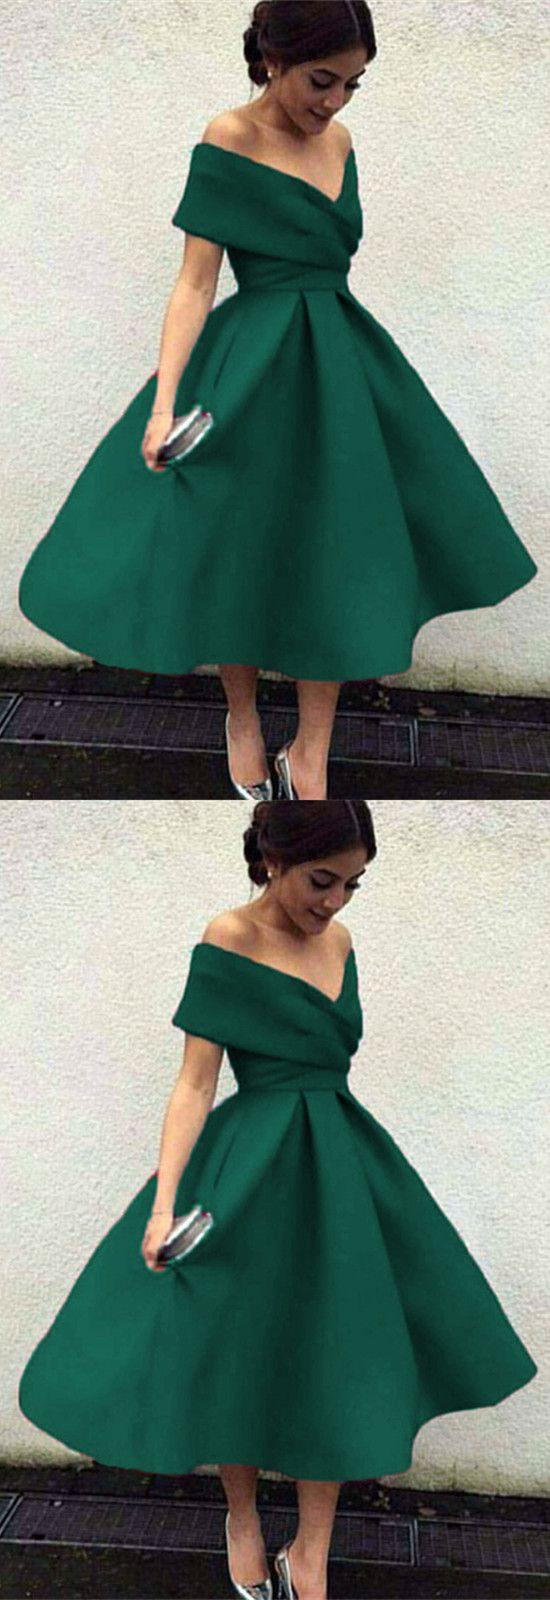 Vintage 1950s Style V Neck Off The Shoulder Tea Length Ball Gowns Party Dresses Green Prom Dress Tea Length Bridesmaid Dresses Prom Dresses With Pockets [ 1600 x 550 Pixel ]